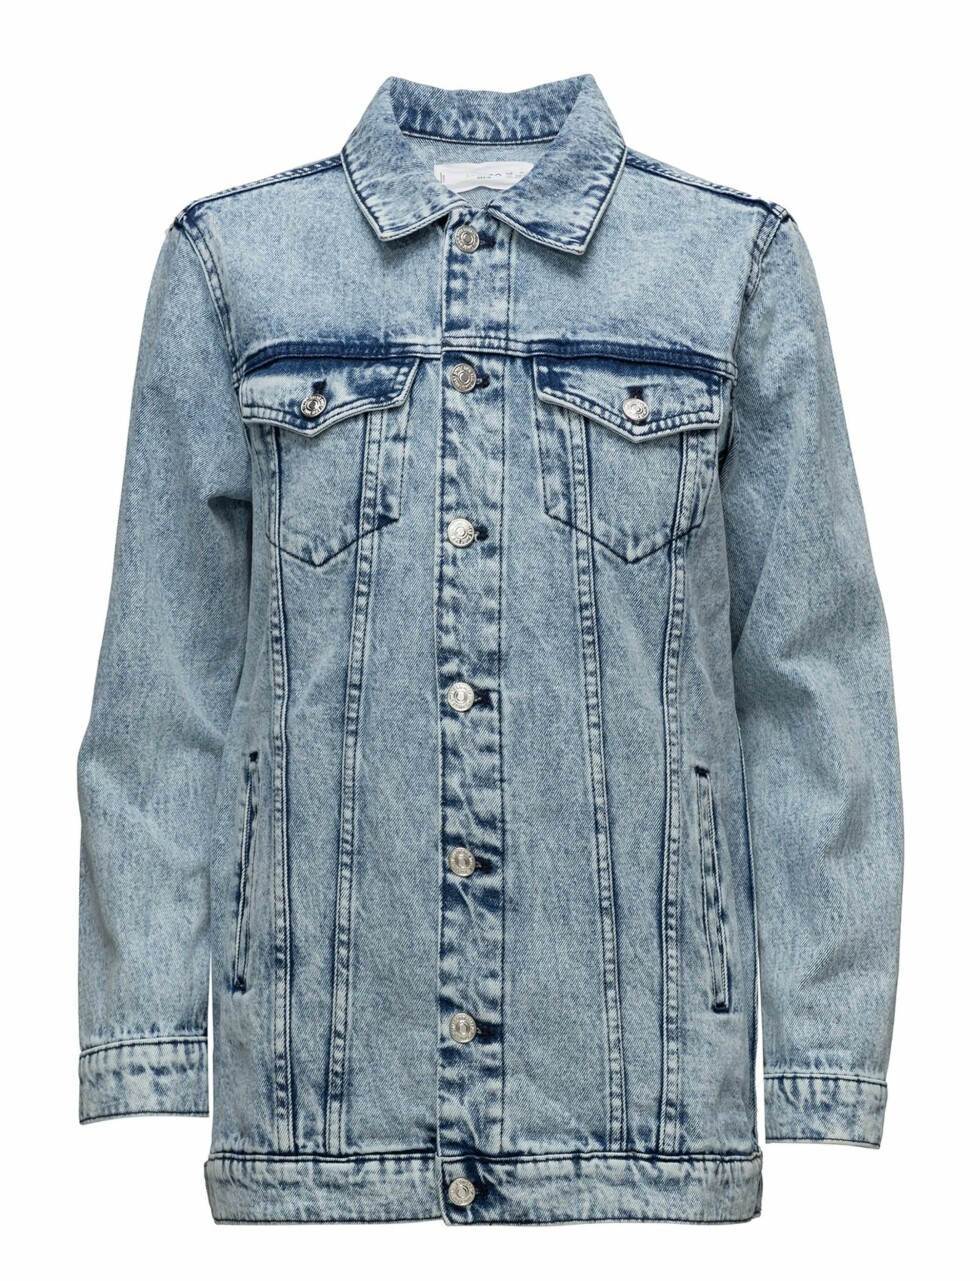 Jakke fra Mango |499,-| https://www.boozt.com/no/no/mango/medium-wash-denim-jacket_18006600/18006602?navId=67378&group=listing&position=1000000